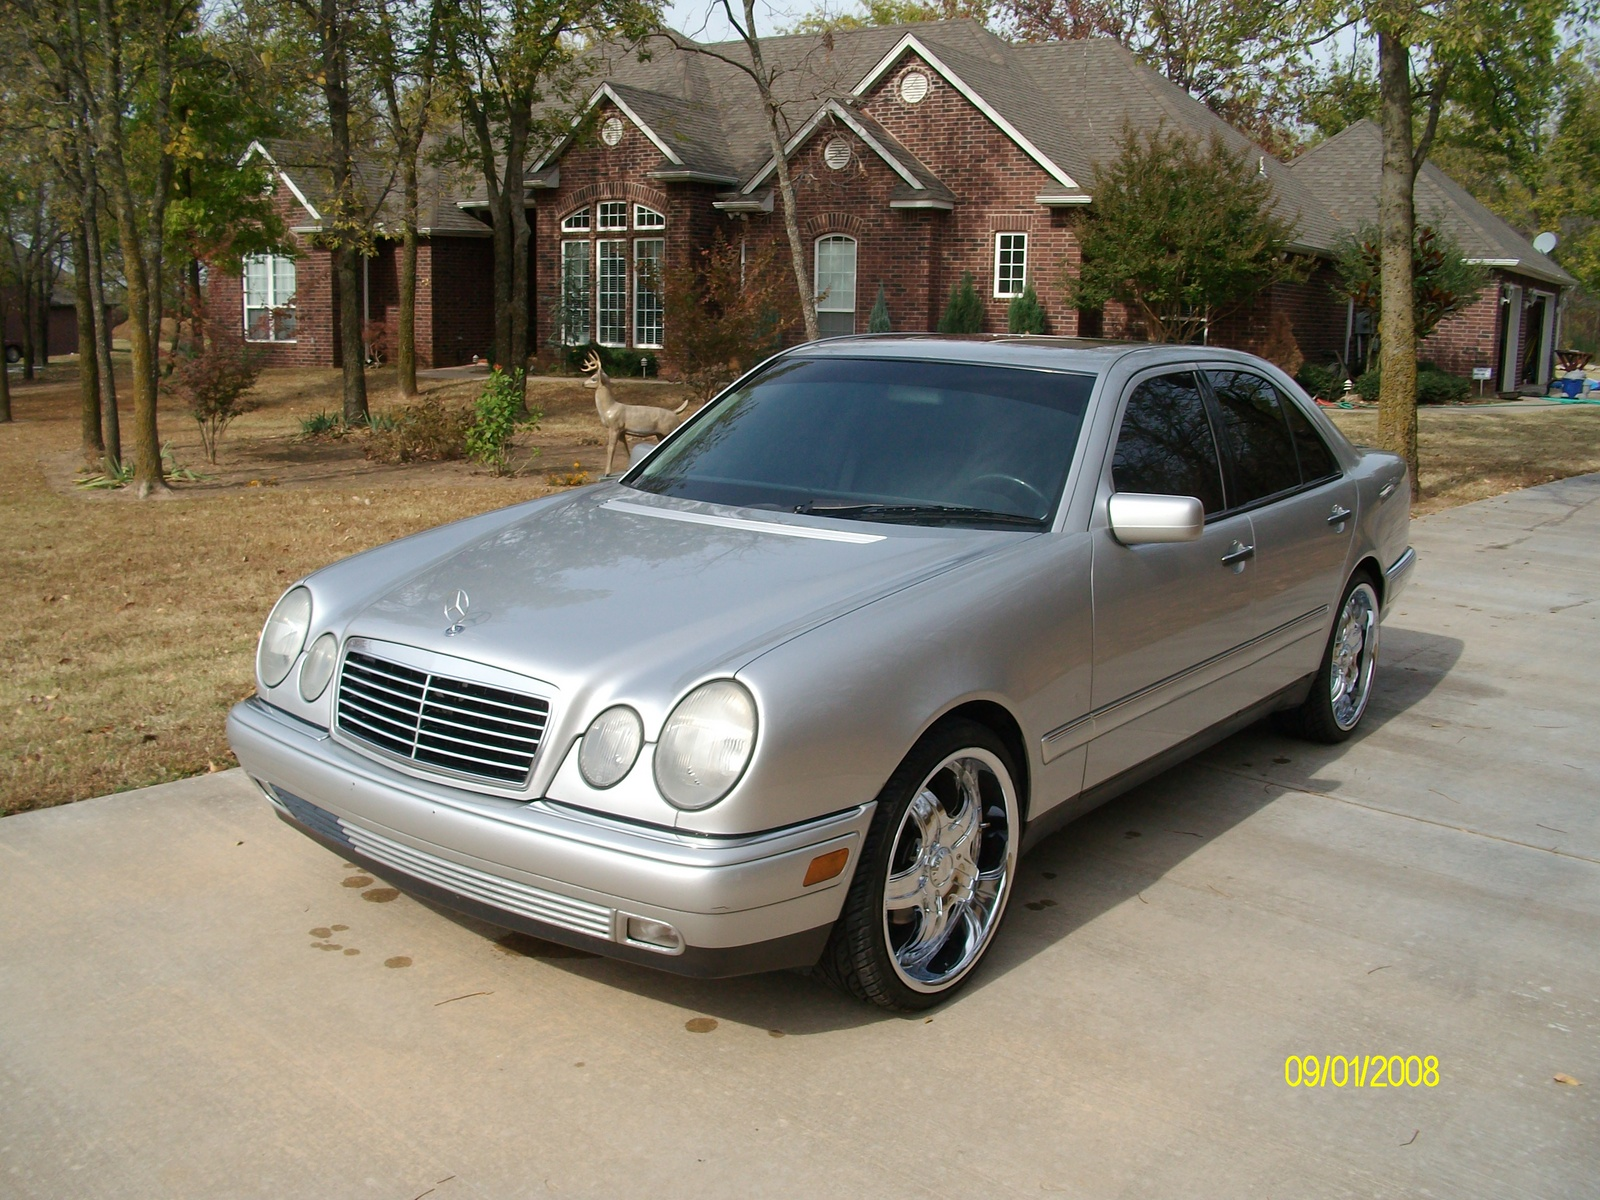 1999 mercedes benz e class pictures cargurus for 2004 mercedes benz e320 review